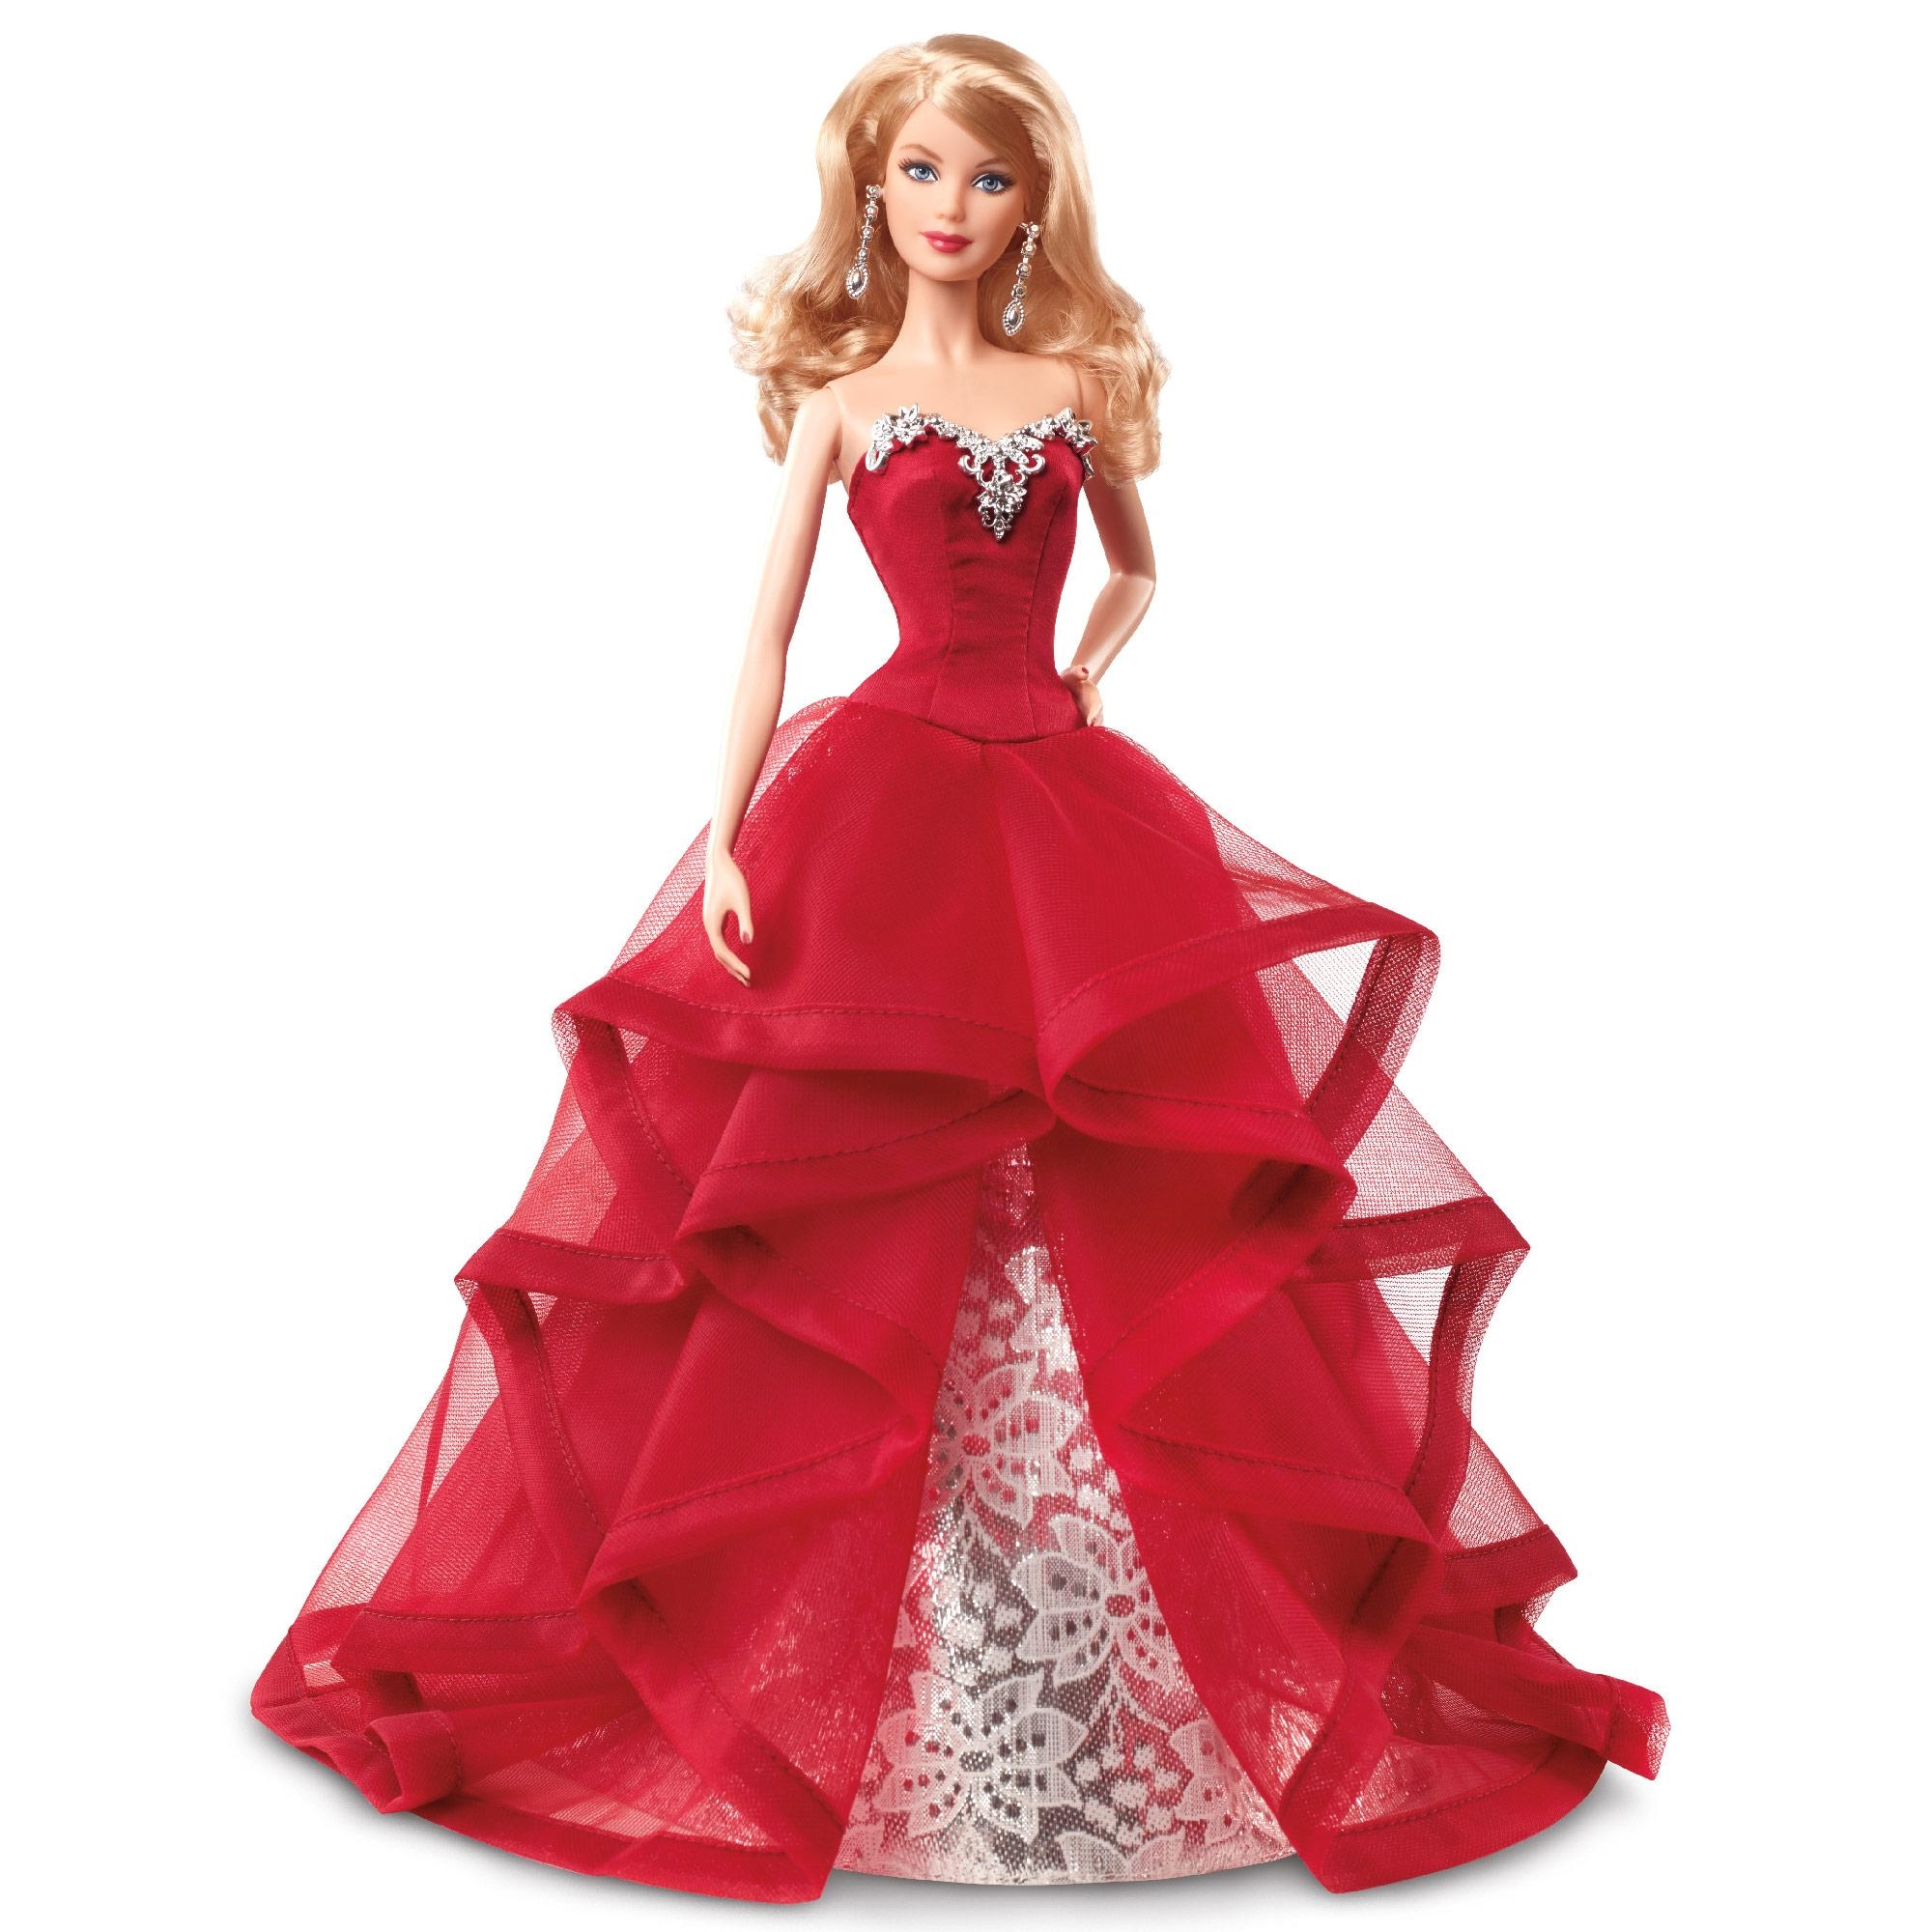 barbie holiday red doll image